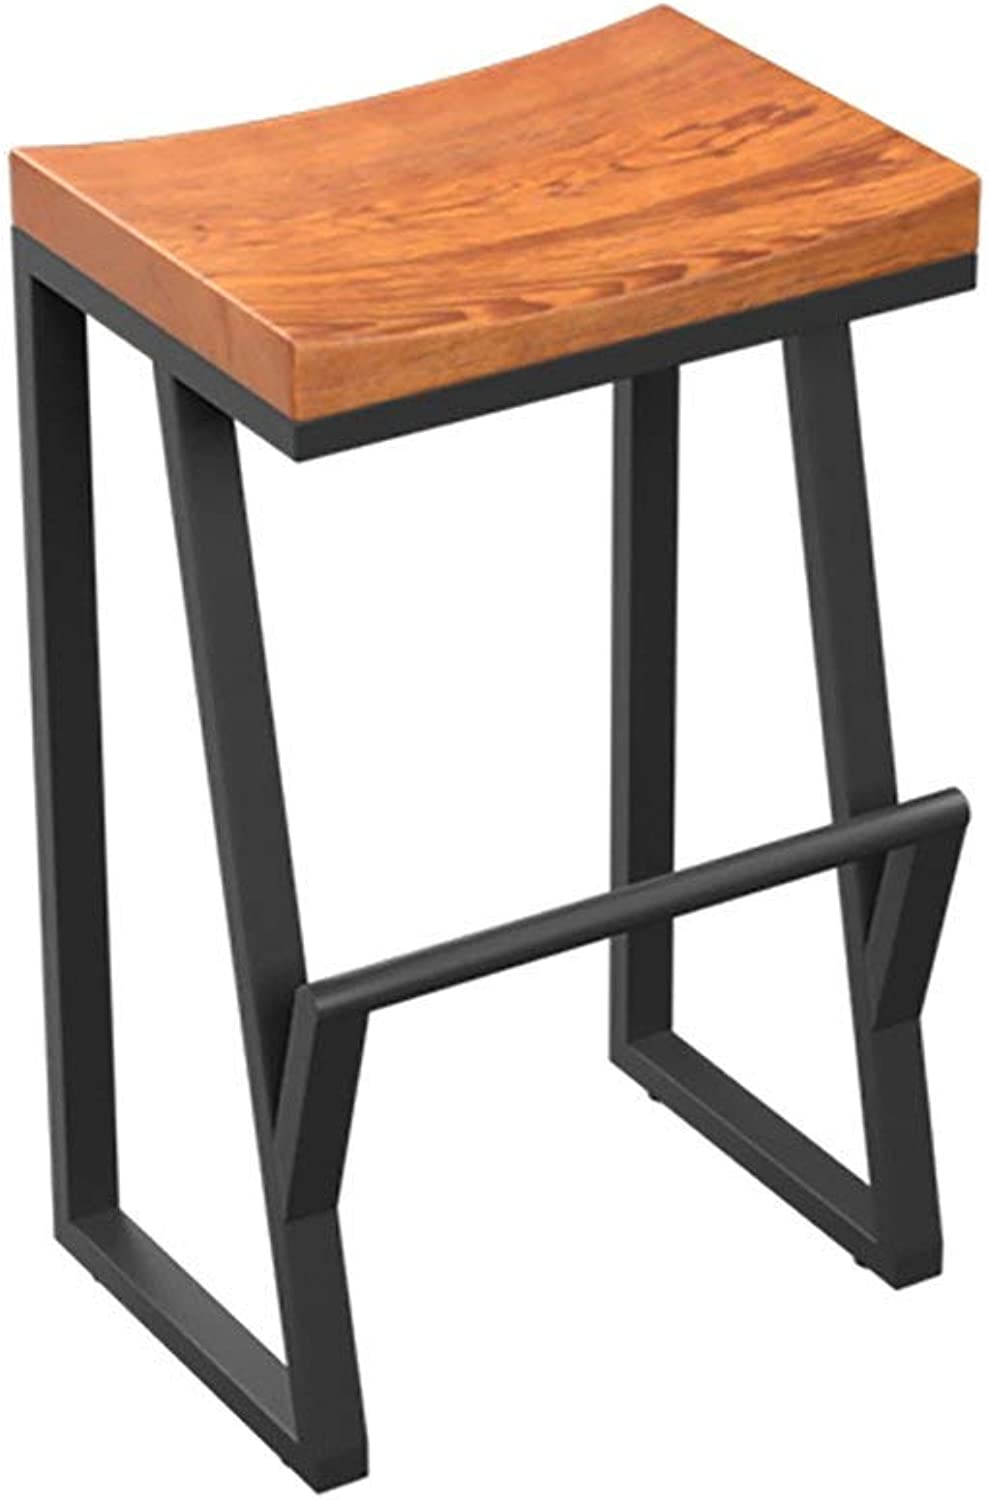 Living Room Furniture Wrought Iron Stool and Ergonomic Footstool   Bar Kitchen Bar Stool Dining Chair   Maximum Load 200 Kg